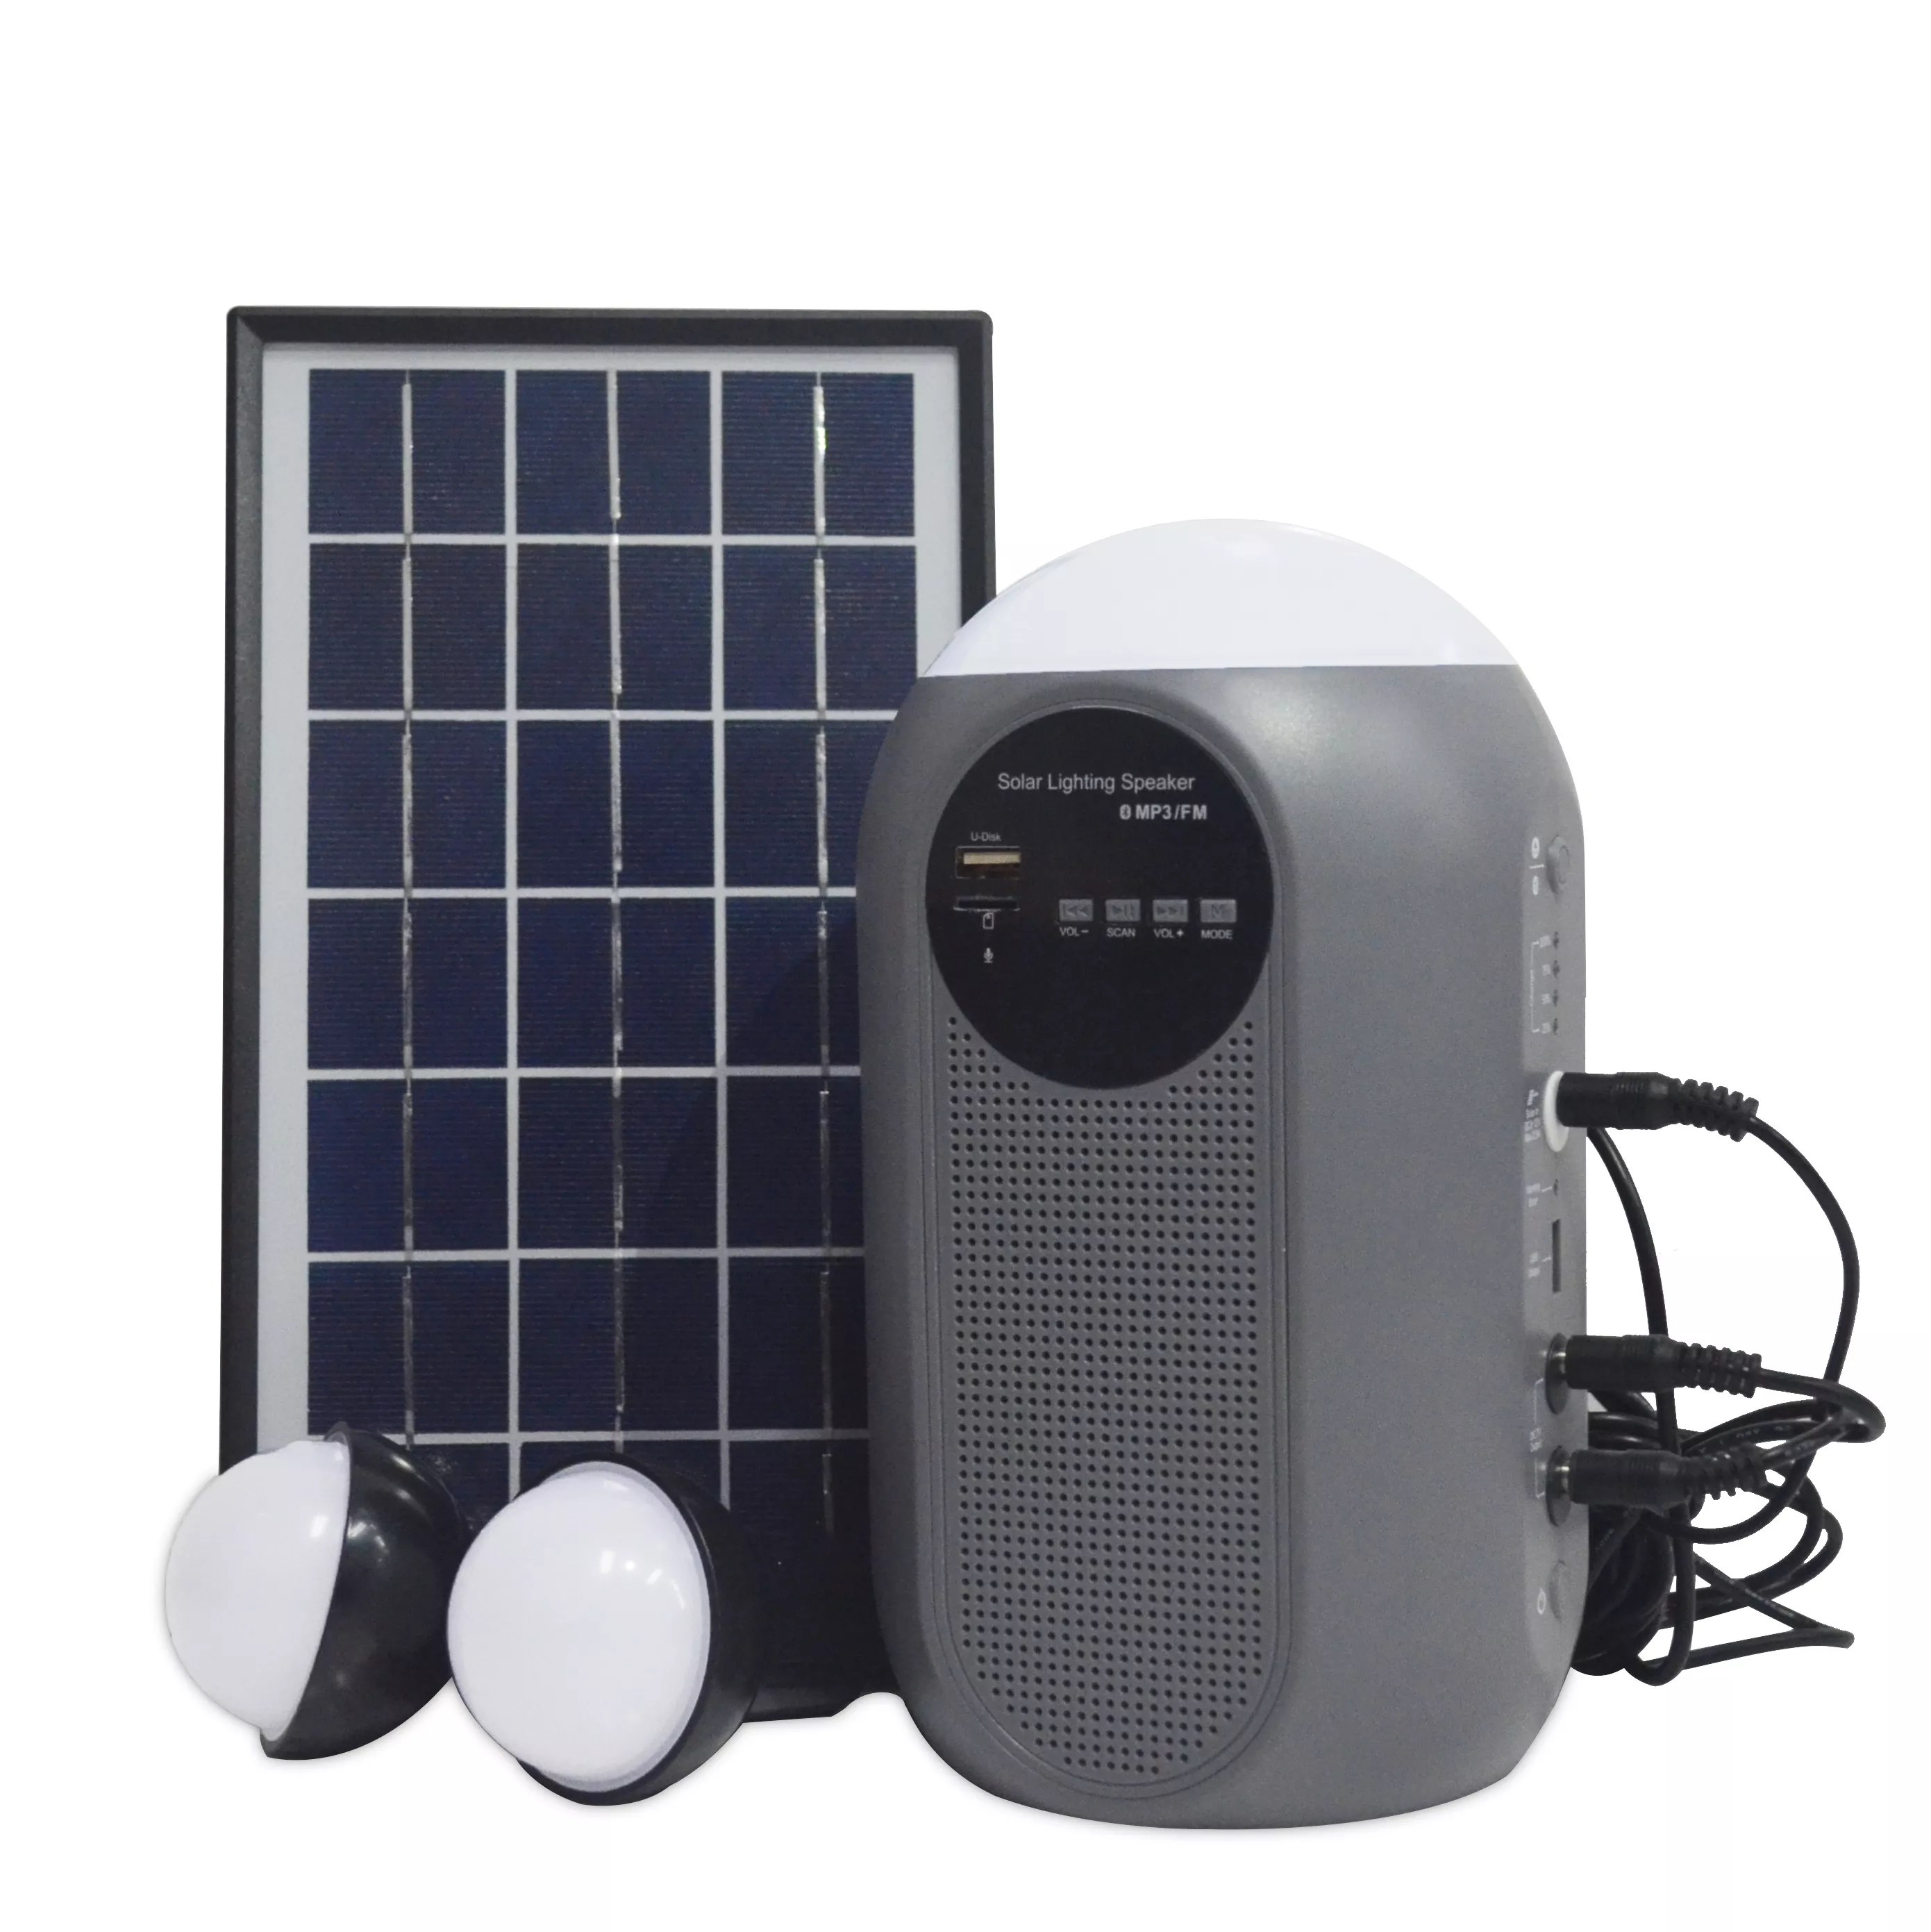 small portable solar home lighting power system with solar panel for home and outdoor buy small portable solar home lighting power system with solar